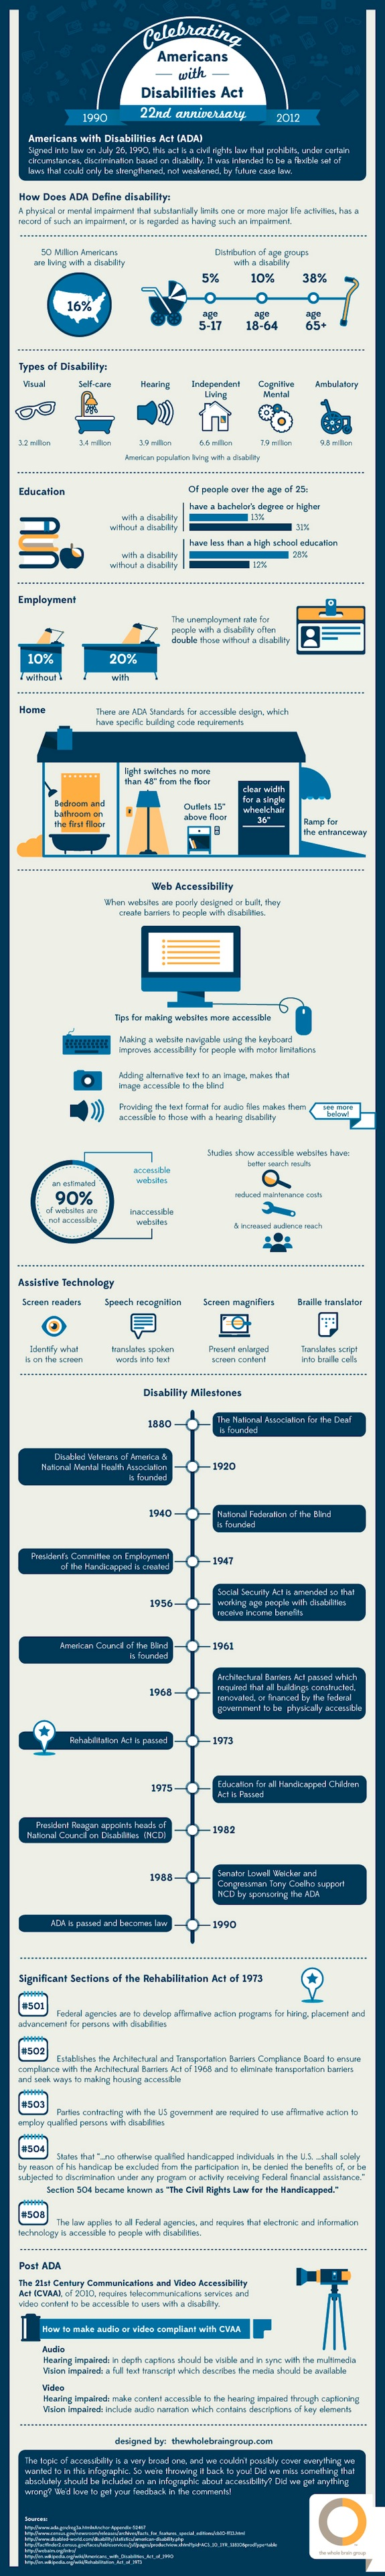 Celebrating ADA's 22nd Anniversary infographic